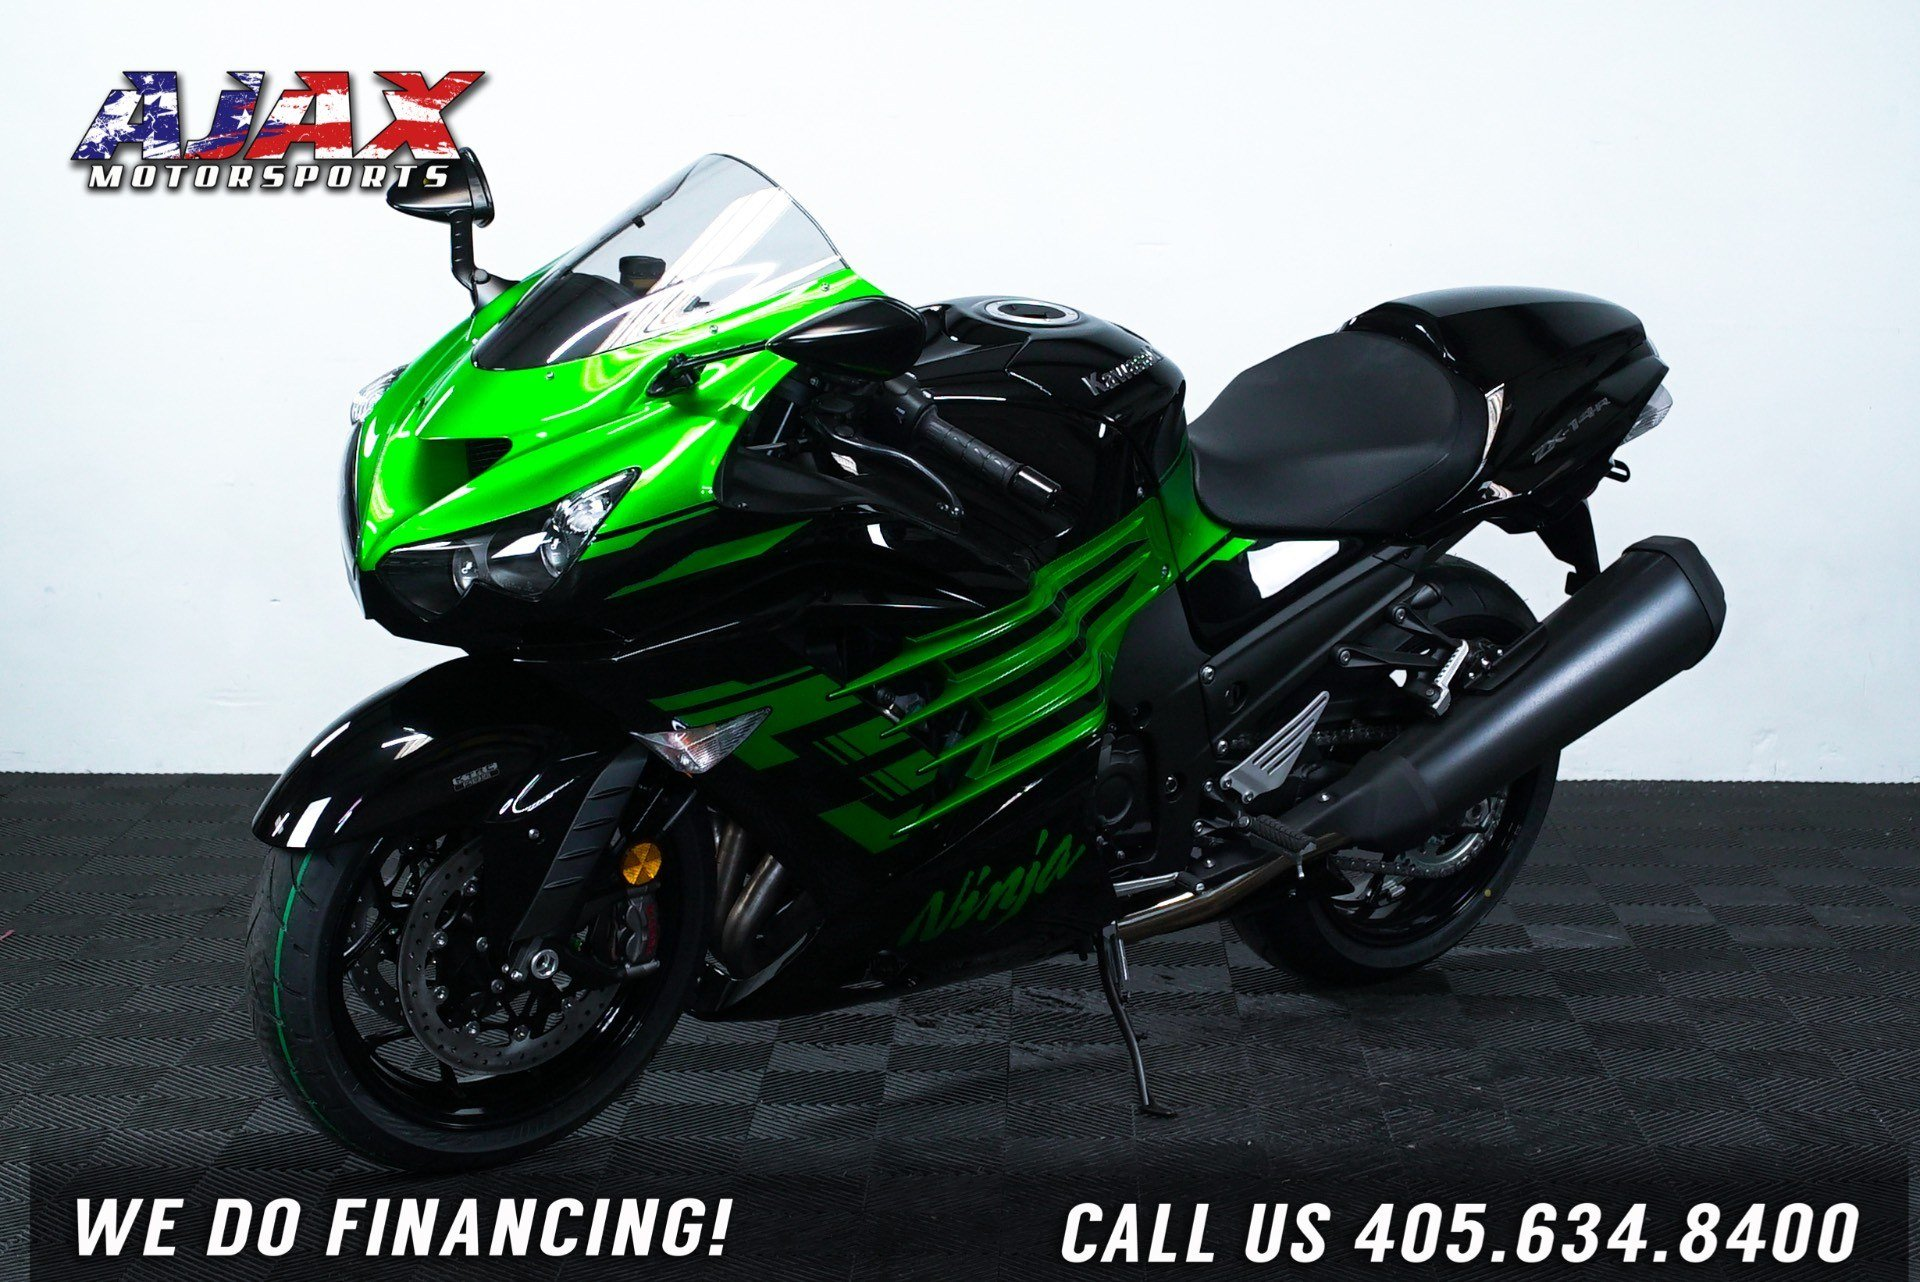 2020 Kawasaki Ninja ZX-14R ABS in Oklahoma City, Oklahoma - Photo 1